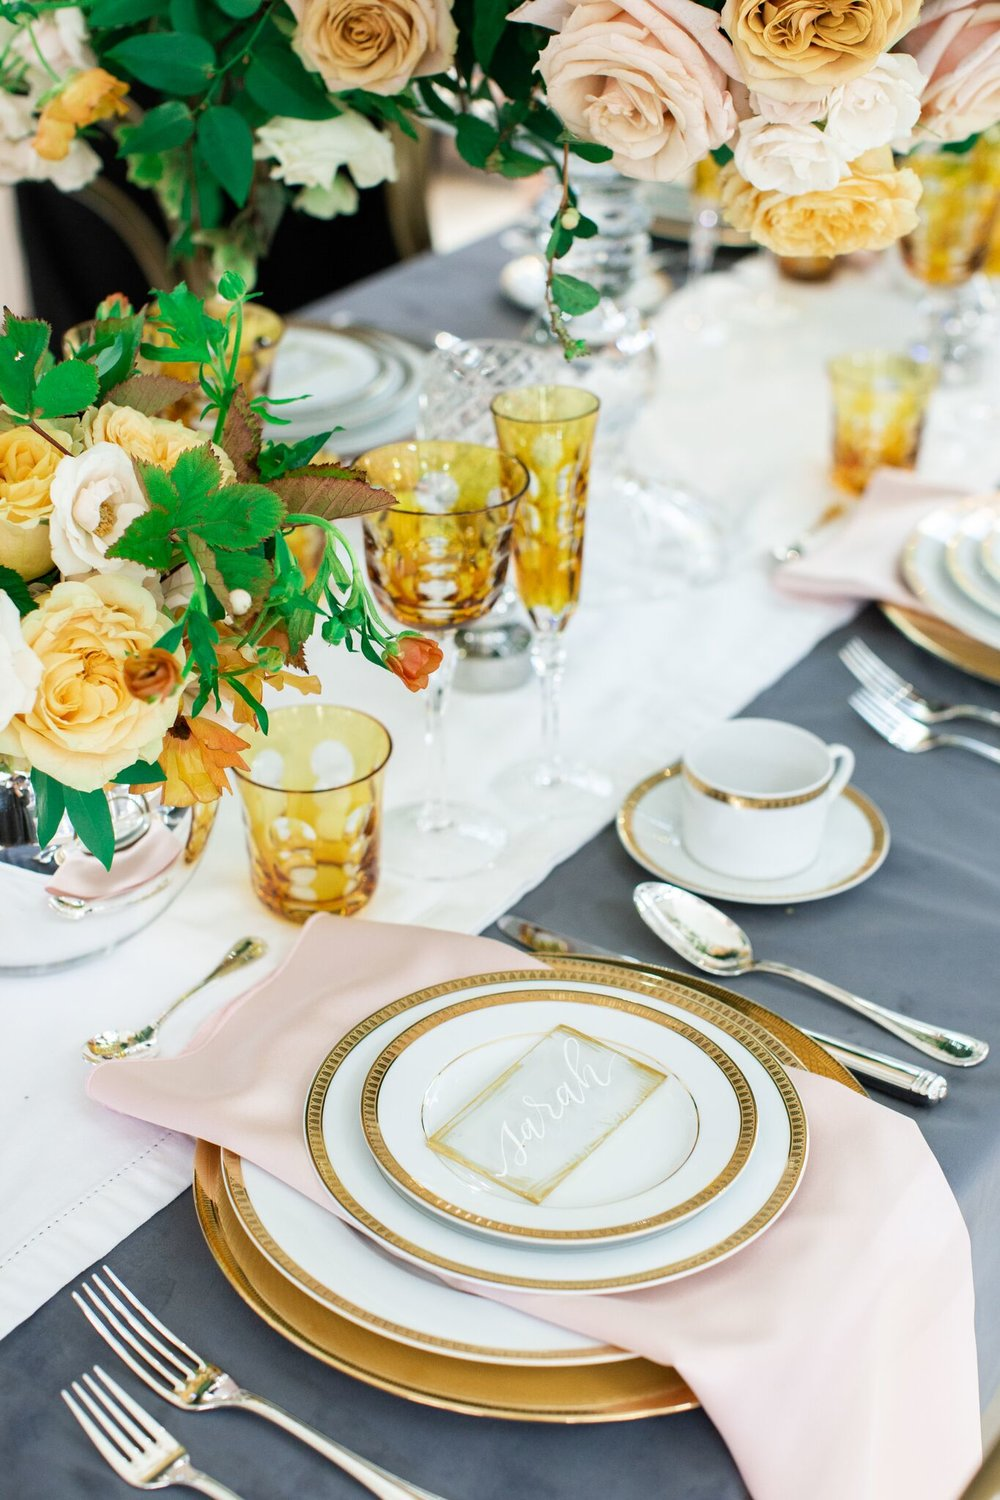 Christofle 2019 gold china. Designed by Marie Flanigan Interiors.